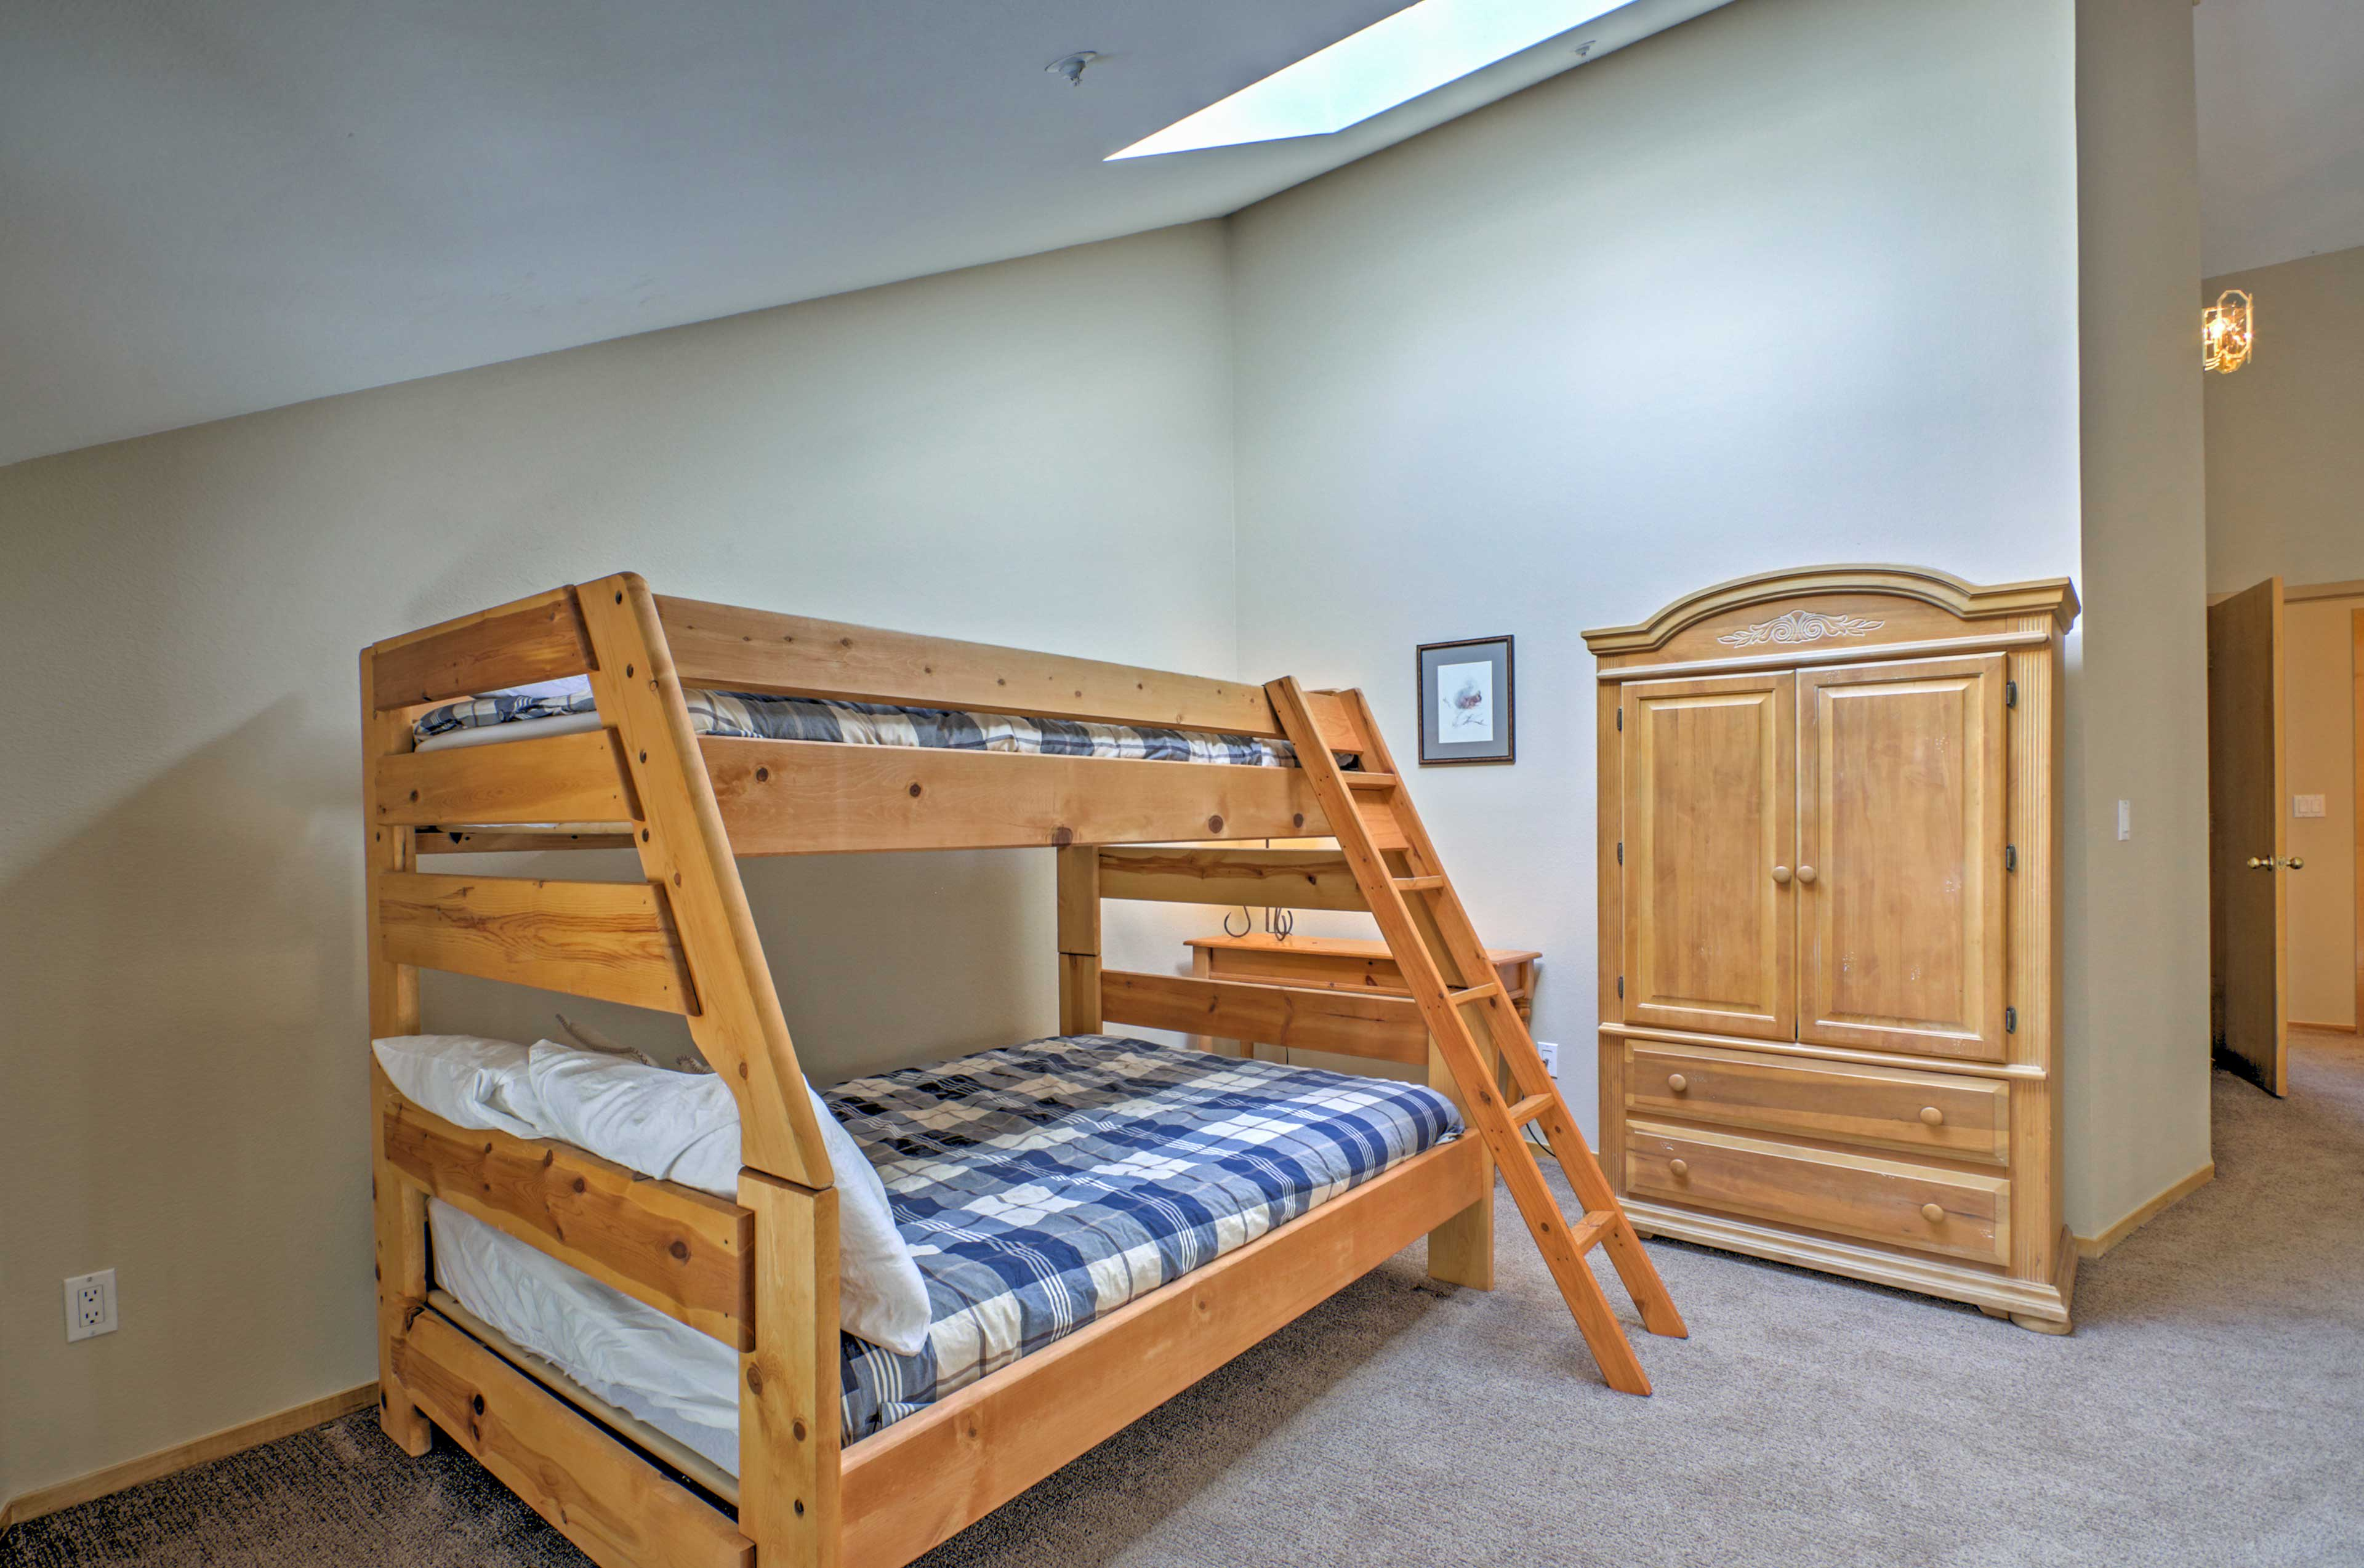 This room is great for kids!